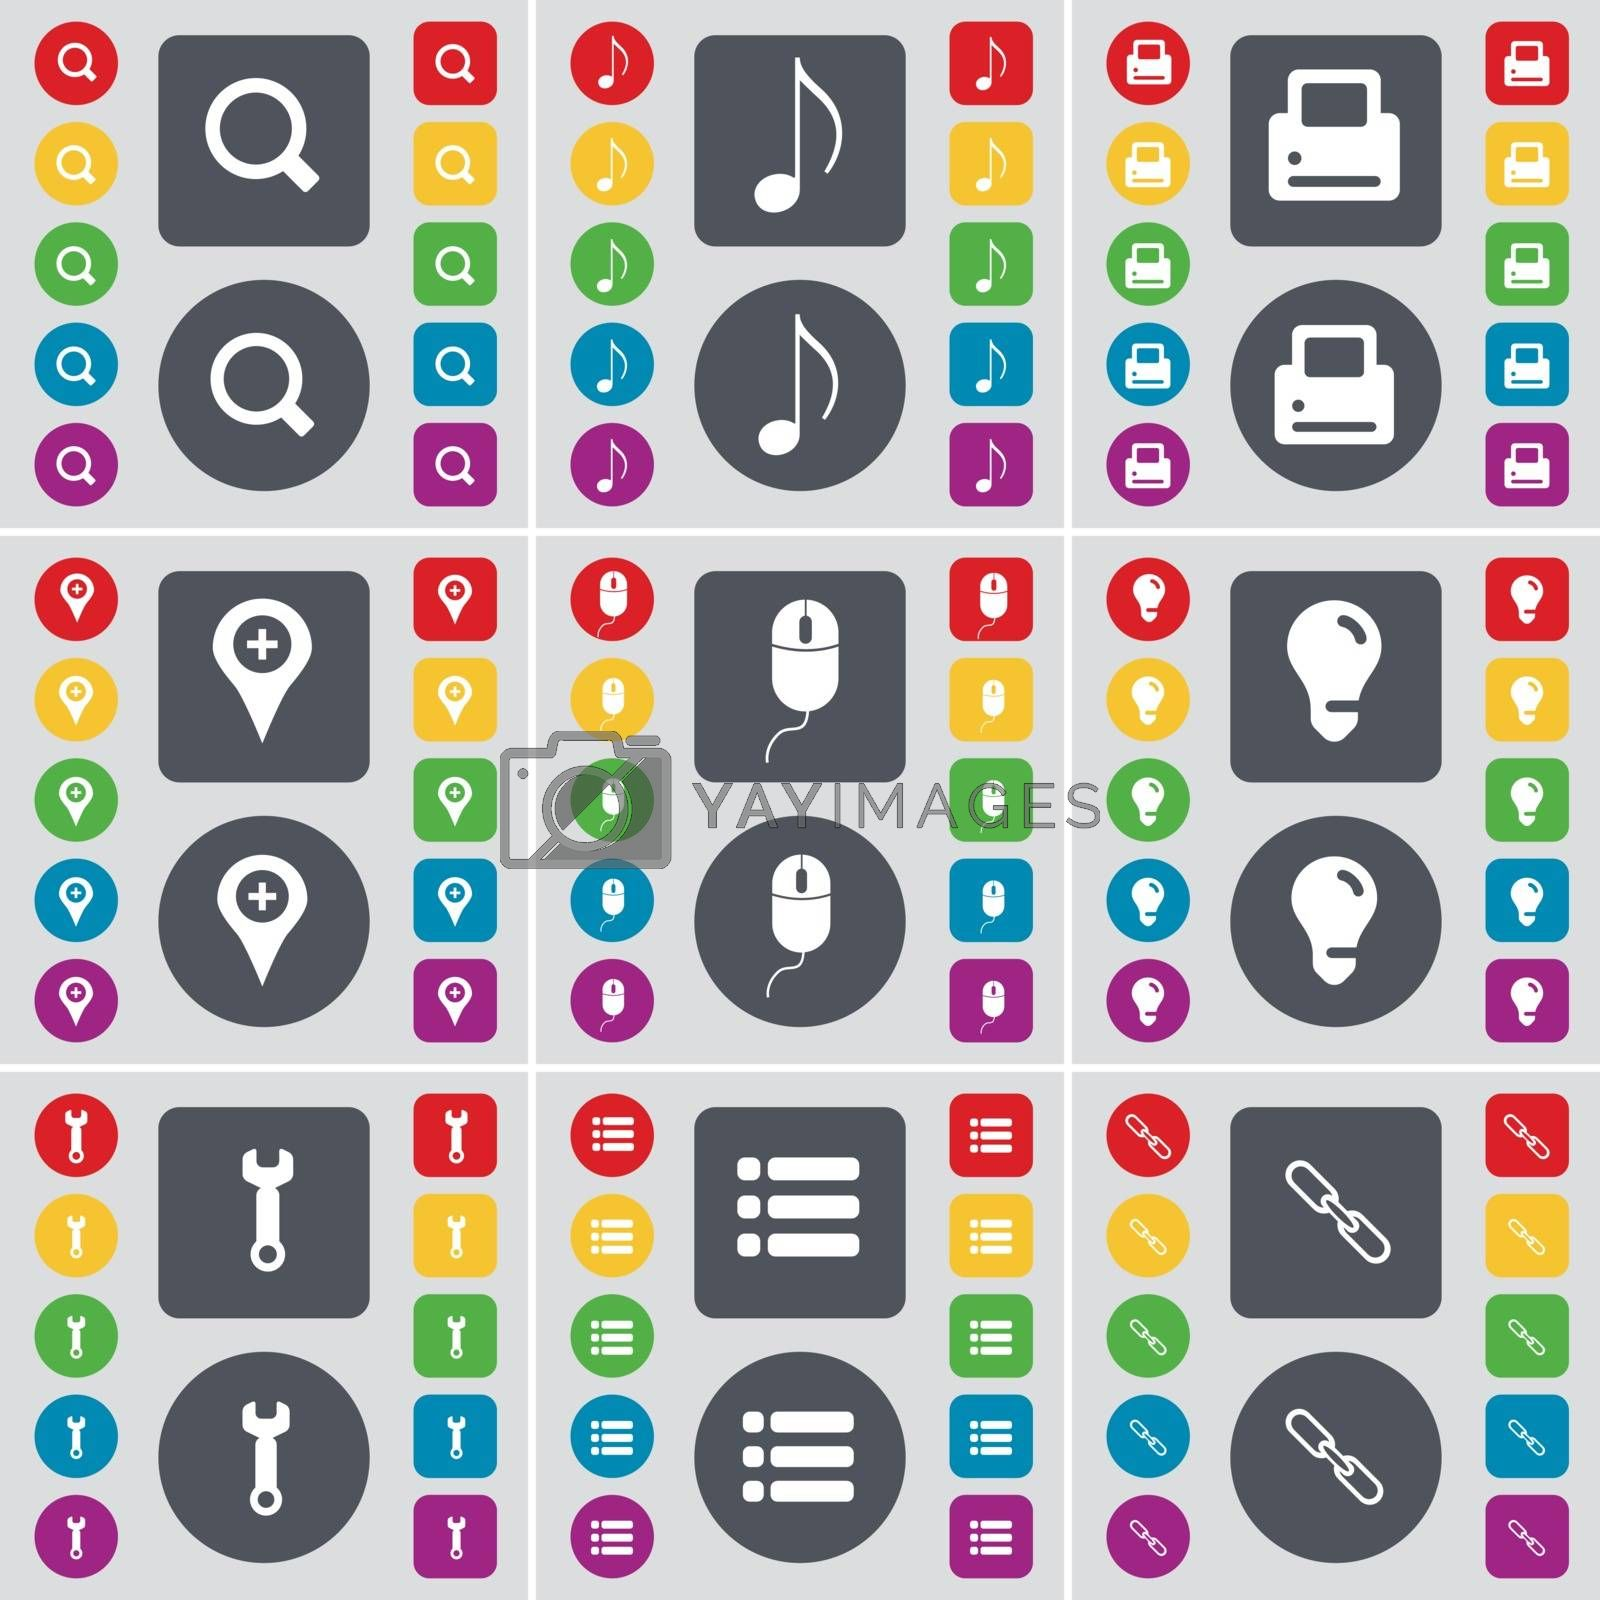 Royalty free image of Magnifying glass, Note, Printer, Checkpoint, Mouse, Light bulb, Wrench, List, Link icon symbol. A large set of flat, colored buttons for your design. Vector by serhii_lohvyniuk